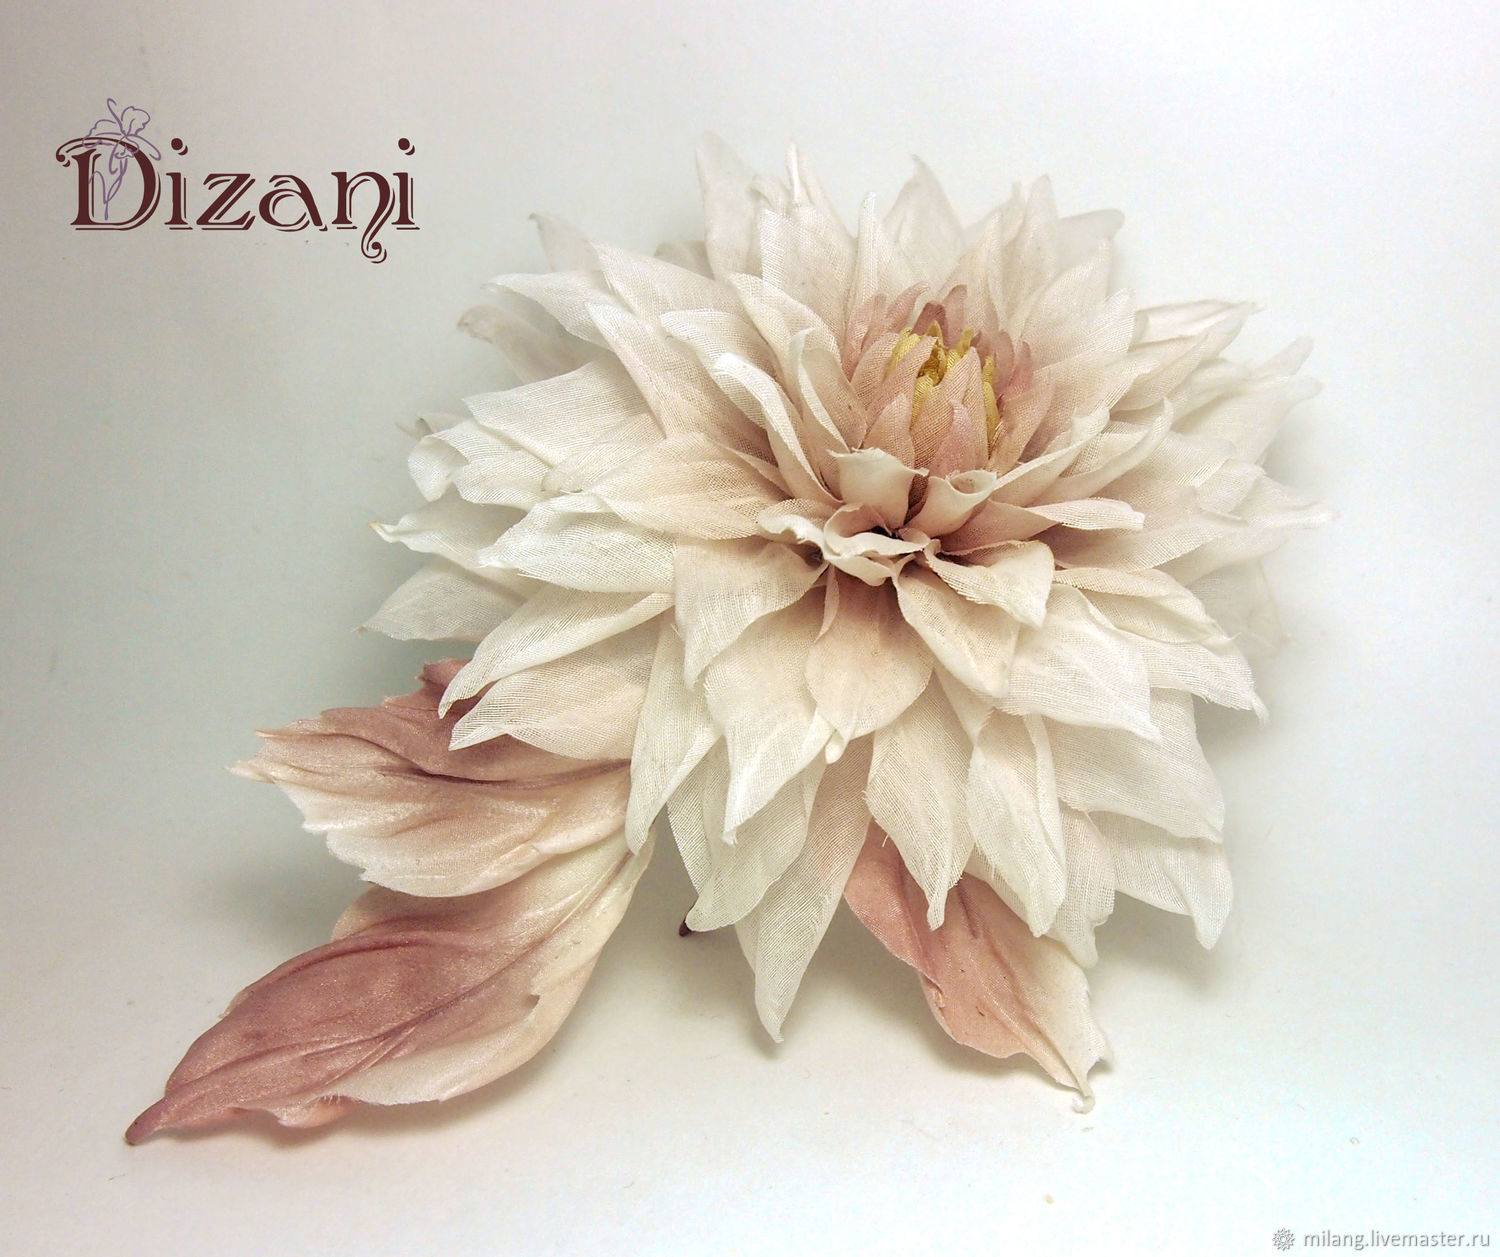 Dahlia Decoration Silk Flowers Shop Online On Livemaster With